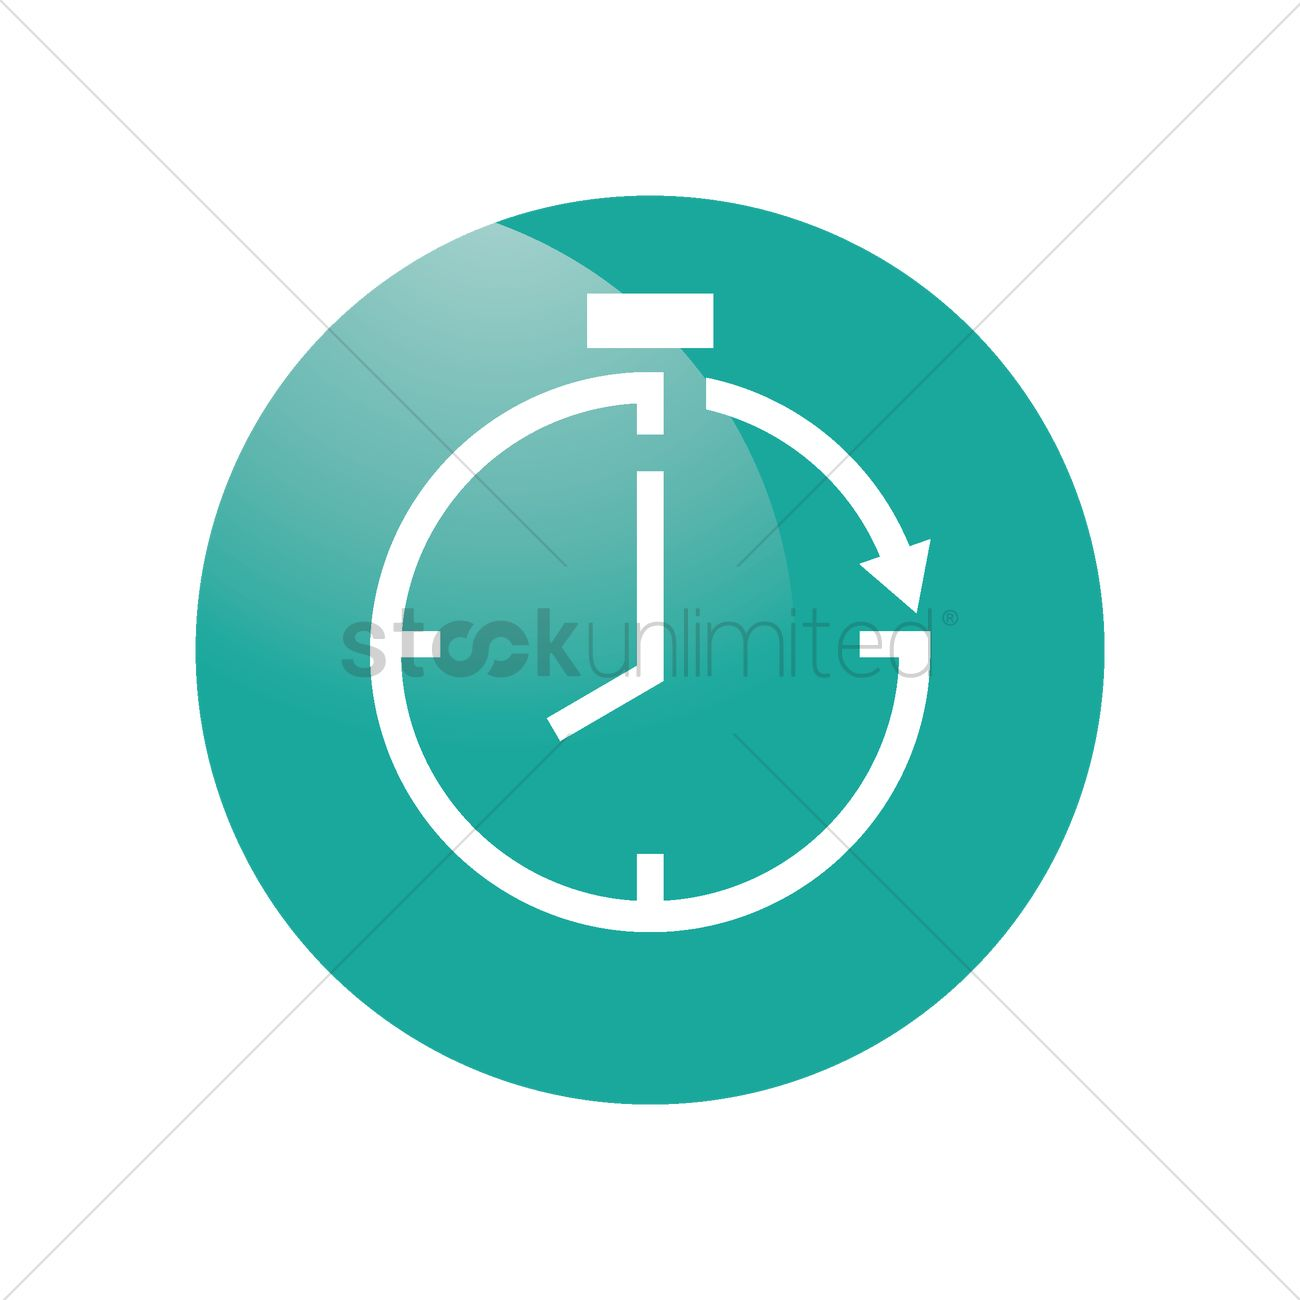 Timer icon Vector Image - 1947377 | StockUnlimited